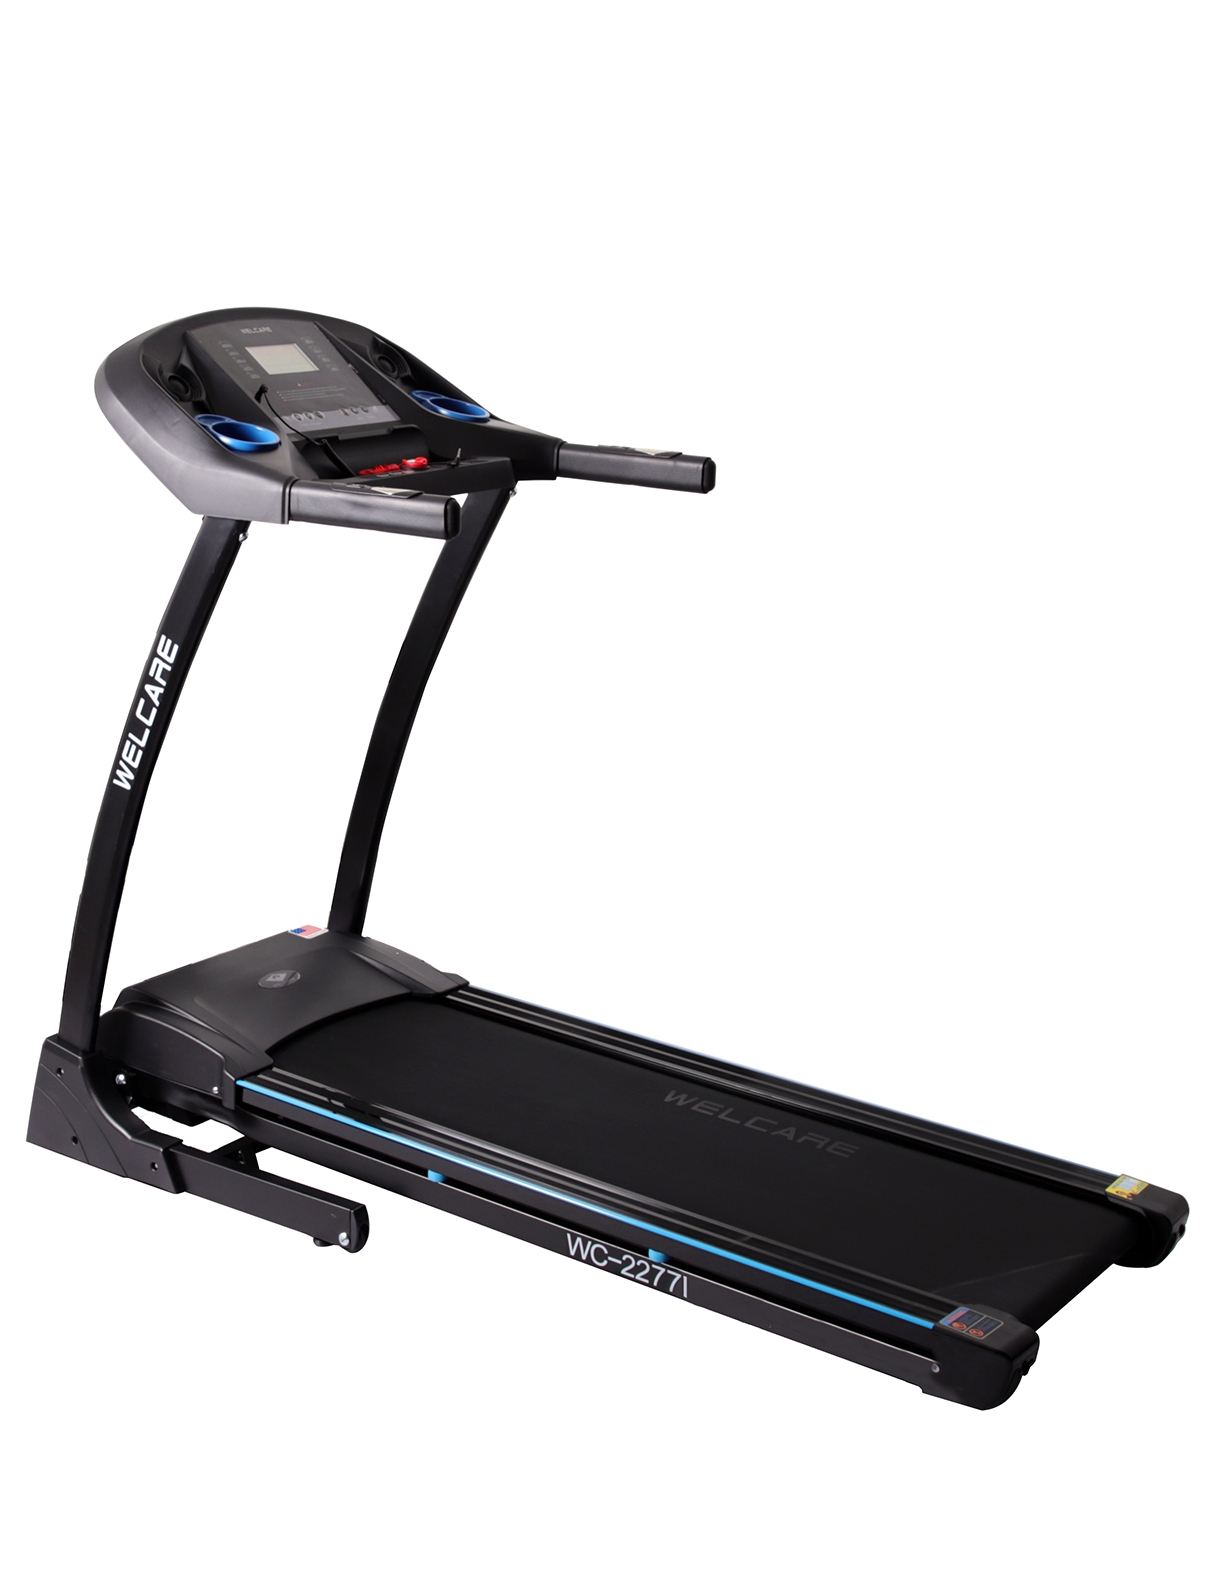 WC 2277I MOTORIZED TREADMILL